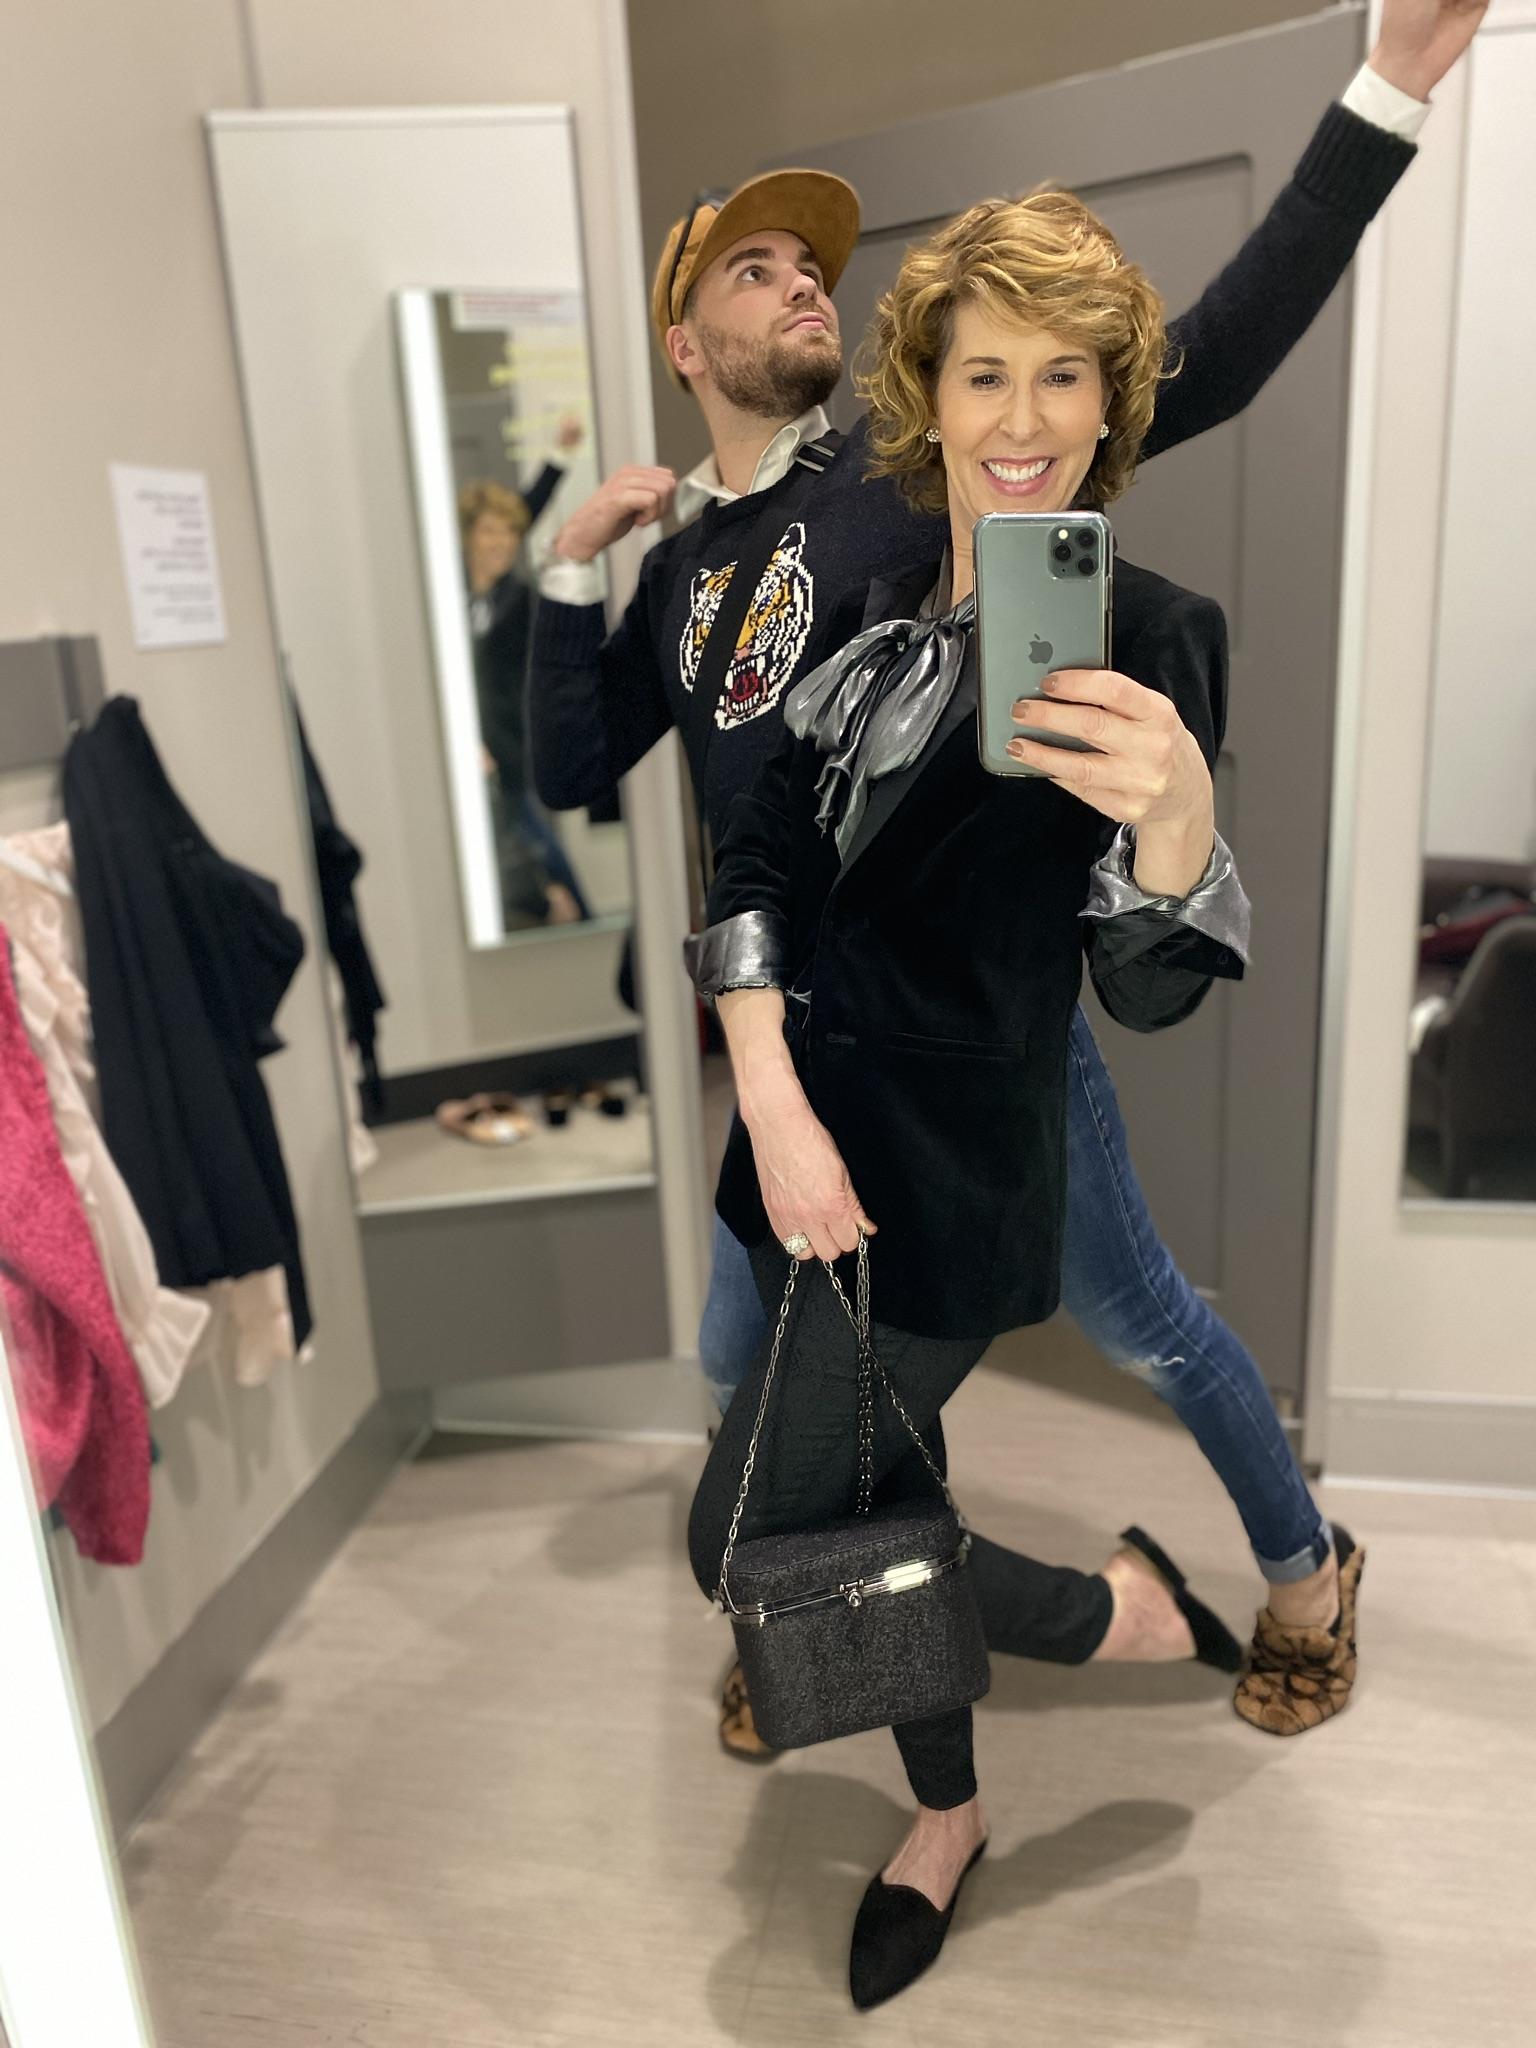 dressing room selfie of woman in metallic tie neck top, velvet jacket and green jeans